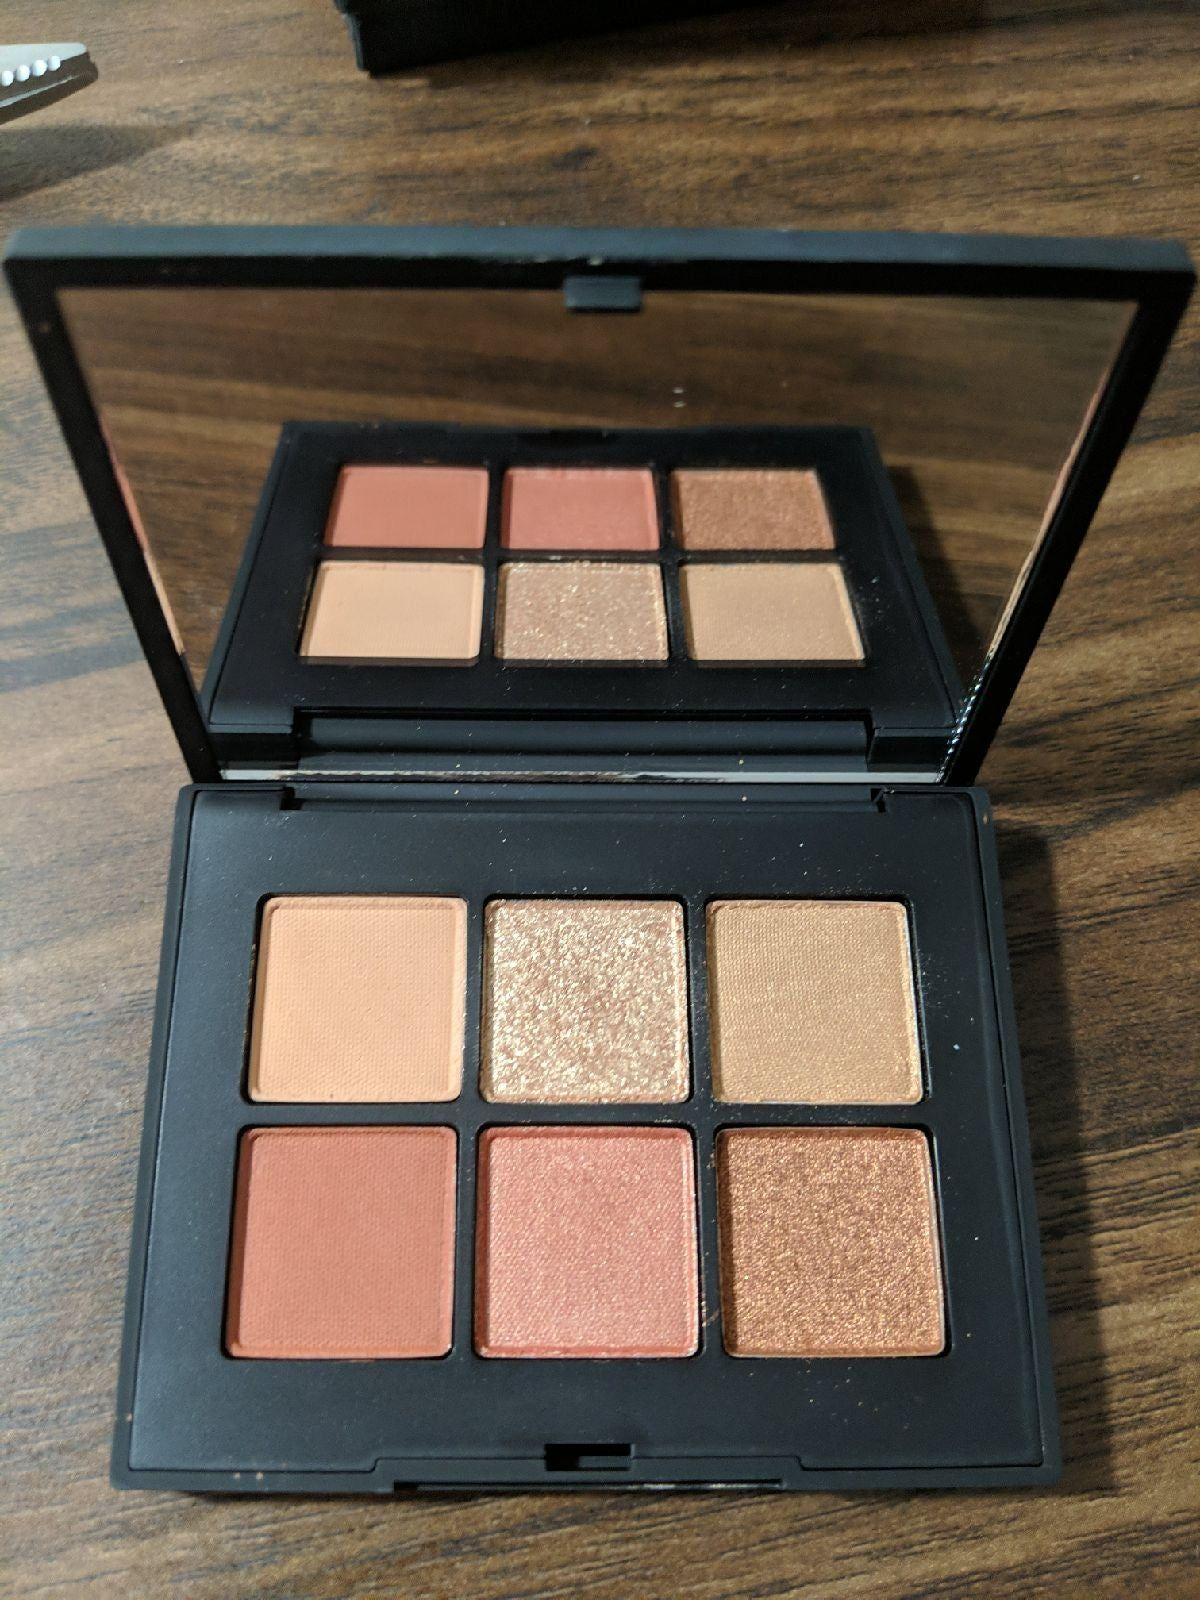 Nars Nectar Mini Eyeshadow Palette Used Twice Nars Eyeshadow Palette Eyeshadow Palette Eyeshadow